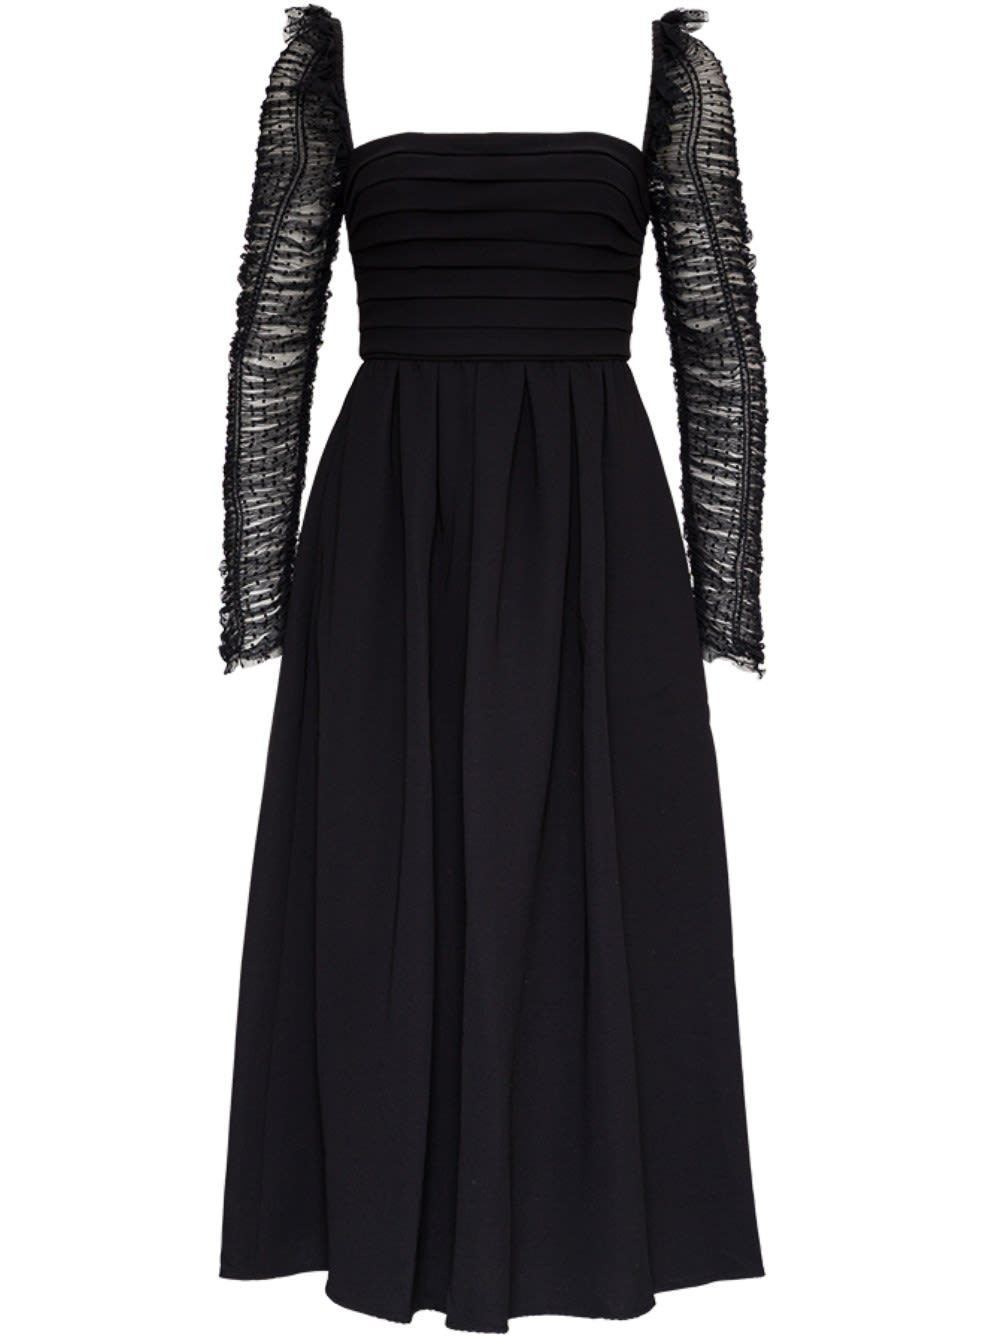 Self-portrait Crepe Dress With Polka Dot Tulle Sleeves In Black